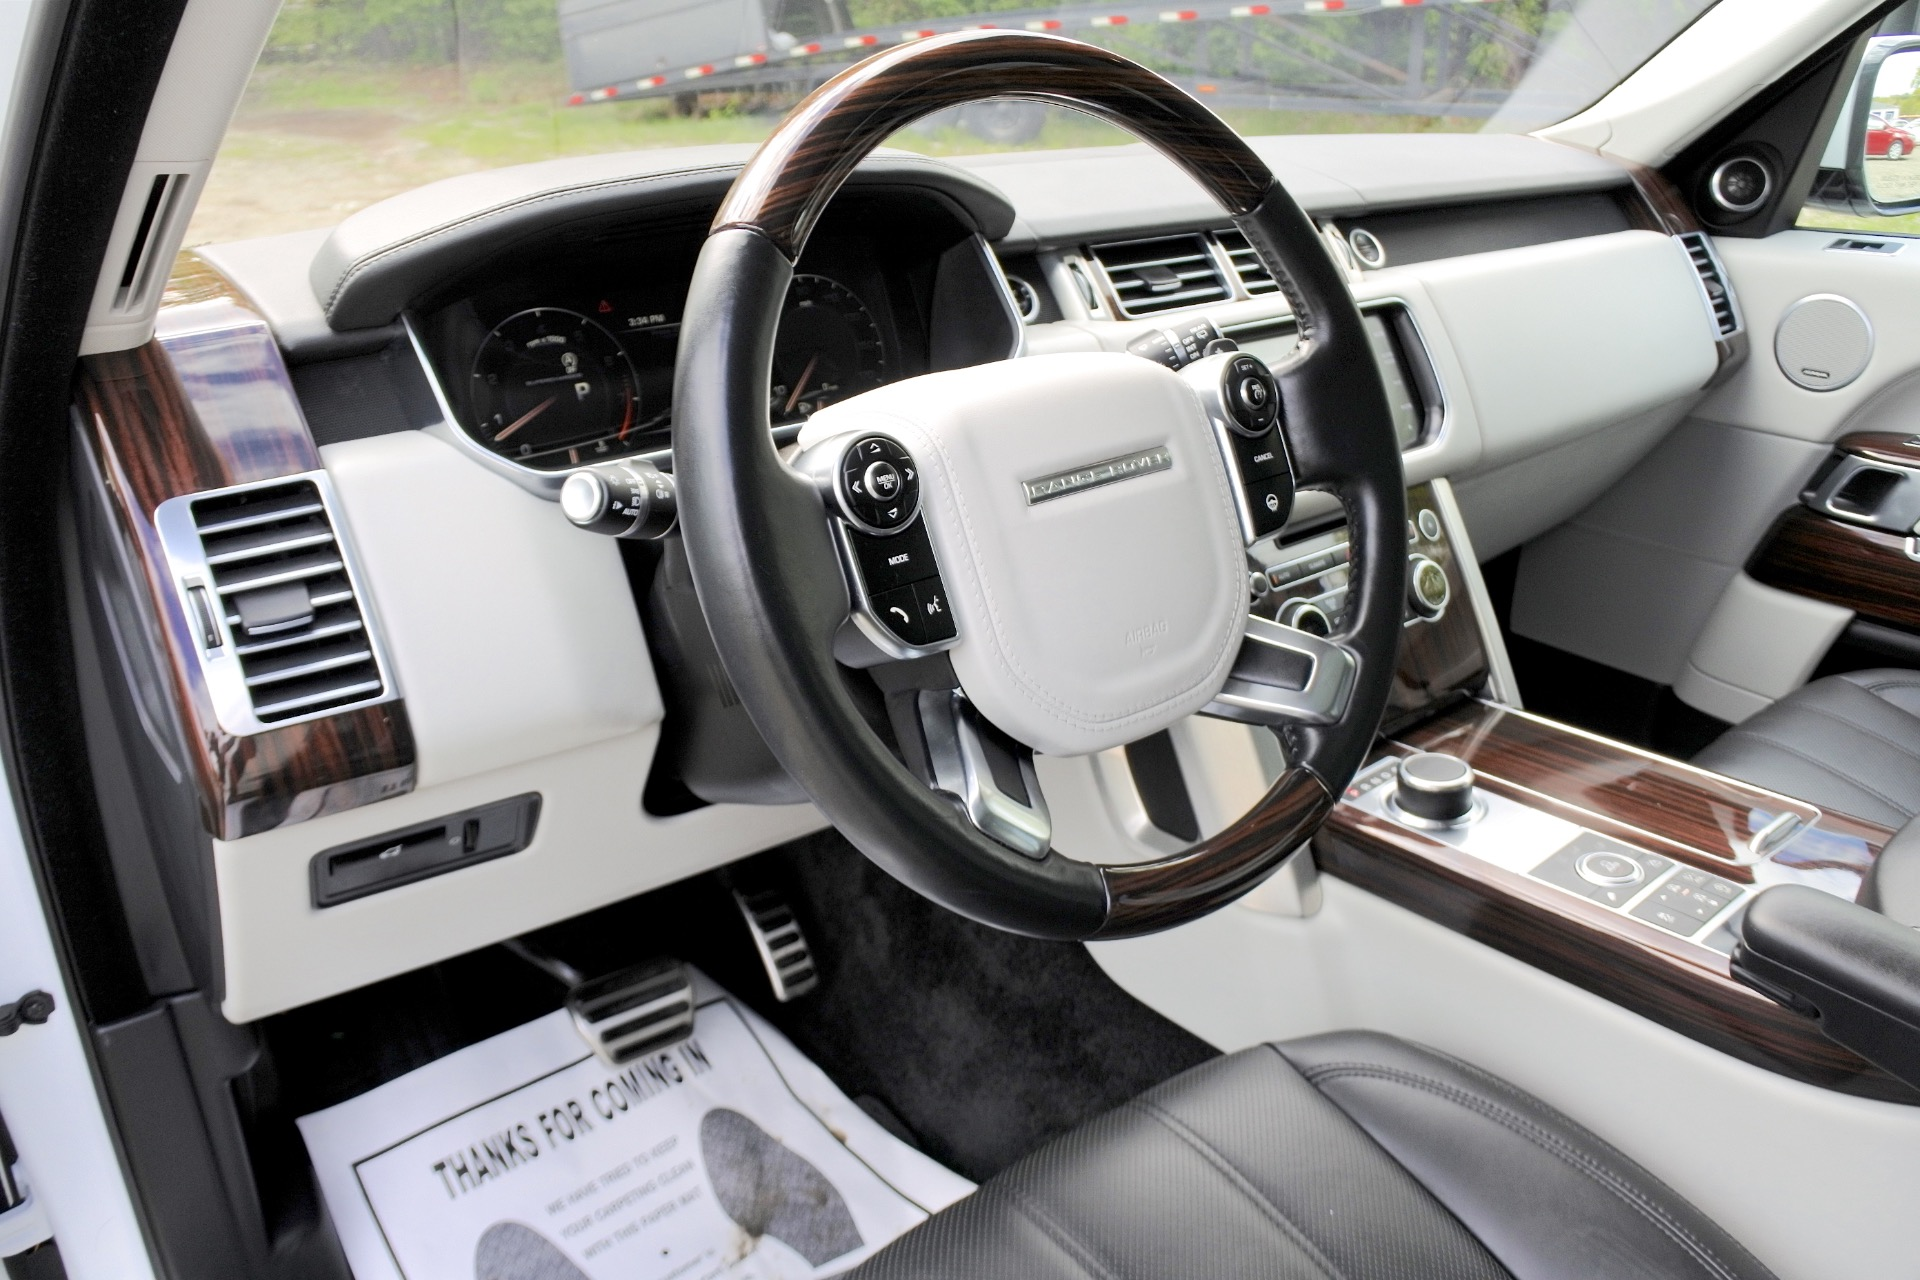 Used 2015 Land Rover Range Rover 4WD 4dr Supercharged Used 2015 Land Rover Range Rover 4WD 4dr Supercharged for sale  at Metro West Motorcars LLC in Shrewsbury MA 13